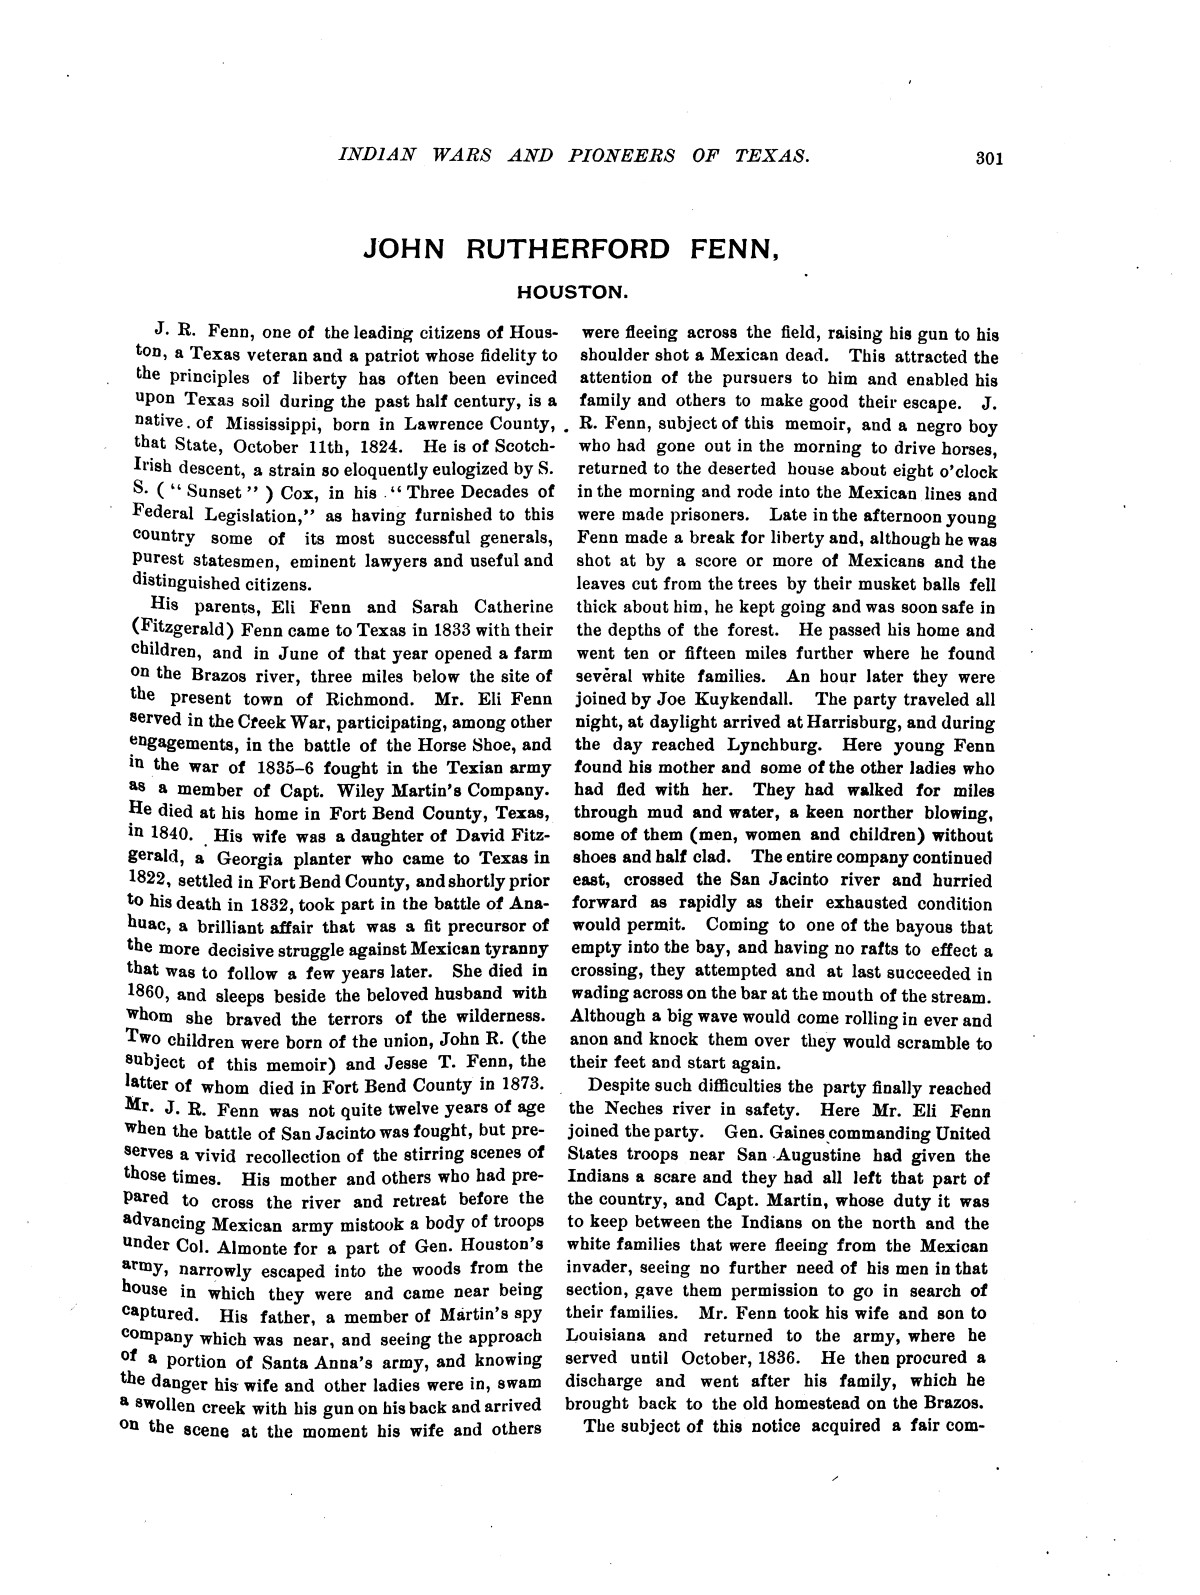 Indian wars and pioneers of Texas / by John Henry Brown.                                                                                                      [Sequence #]: 354 of 894